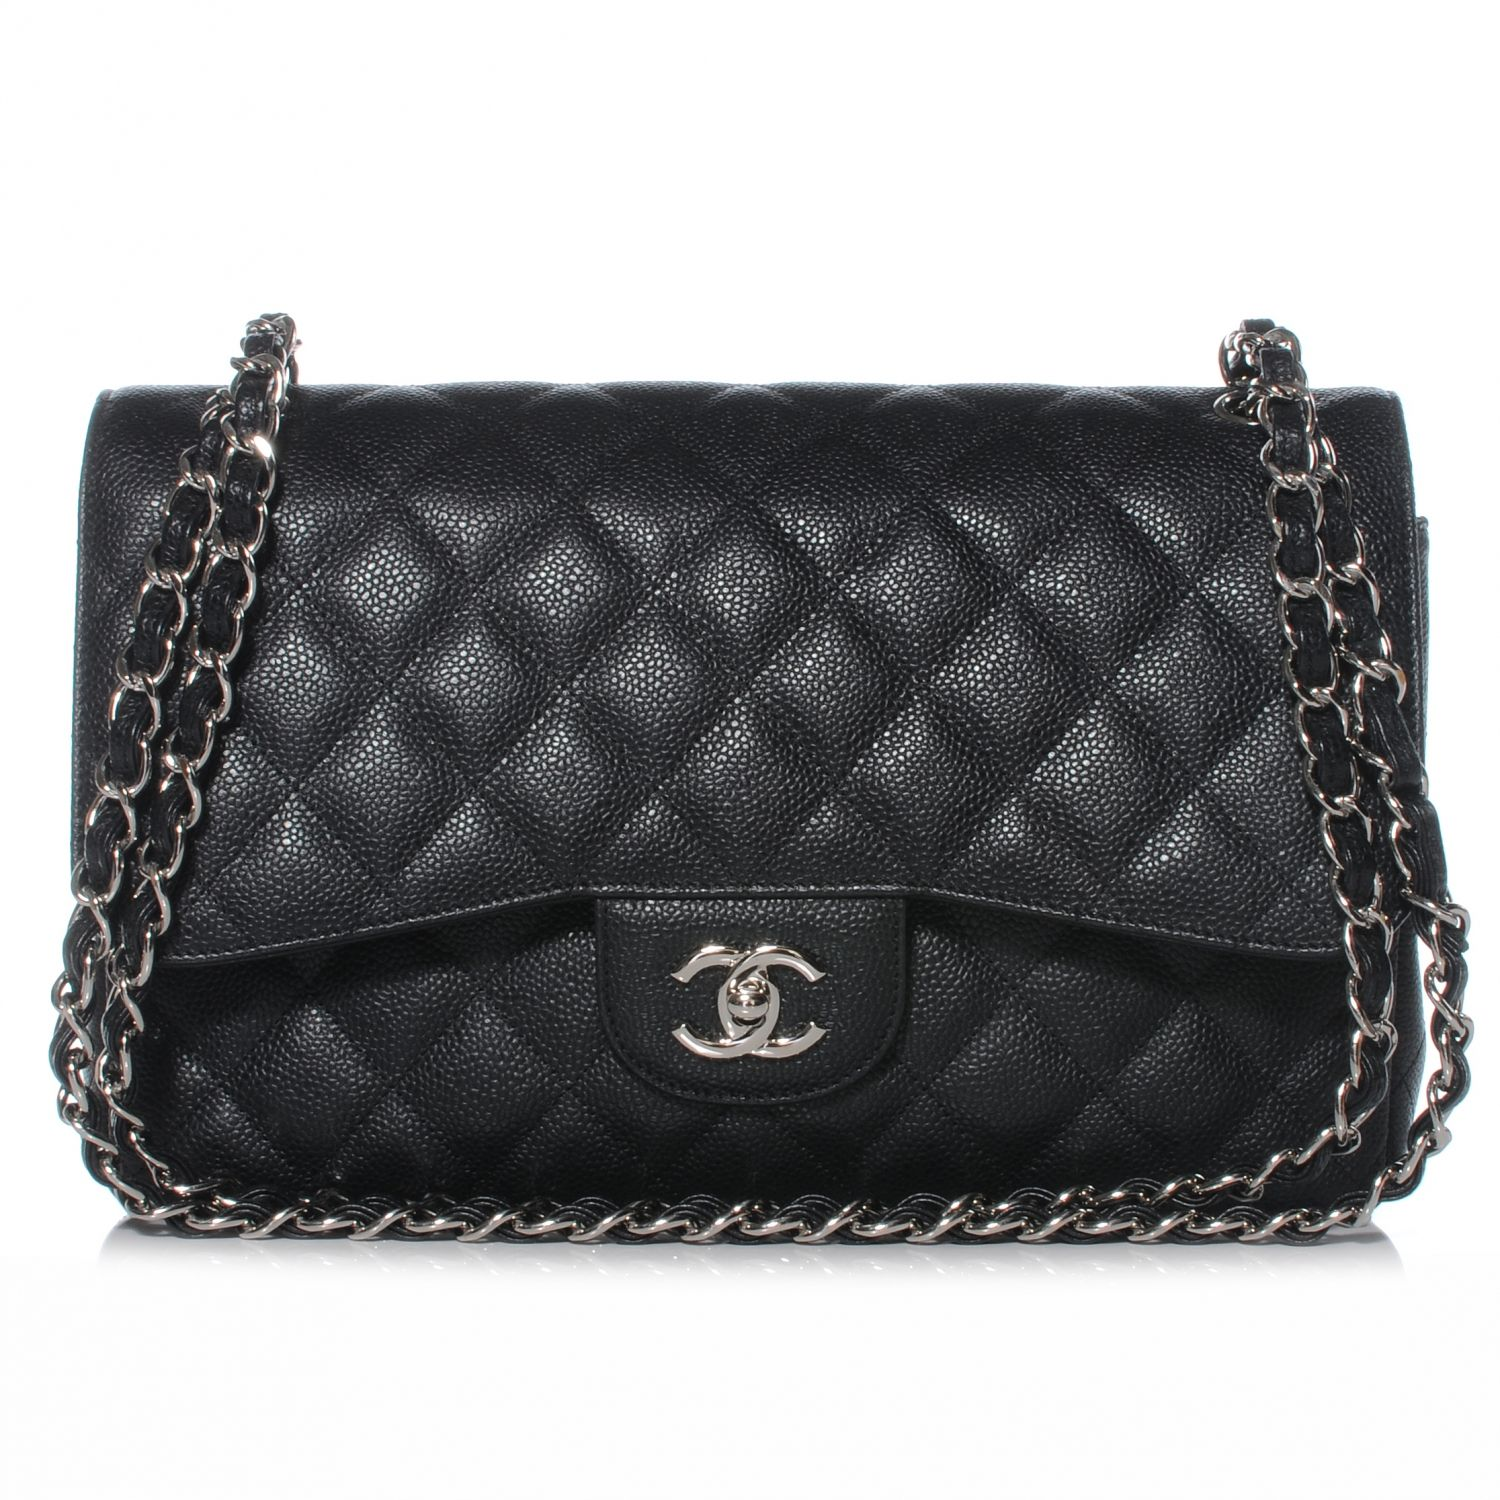 8134f26fcd0666 Chanel Black Quilted Caviar Classic Jumbo 2.55 Double Flap Bag with Silver  hardware.